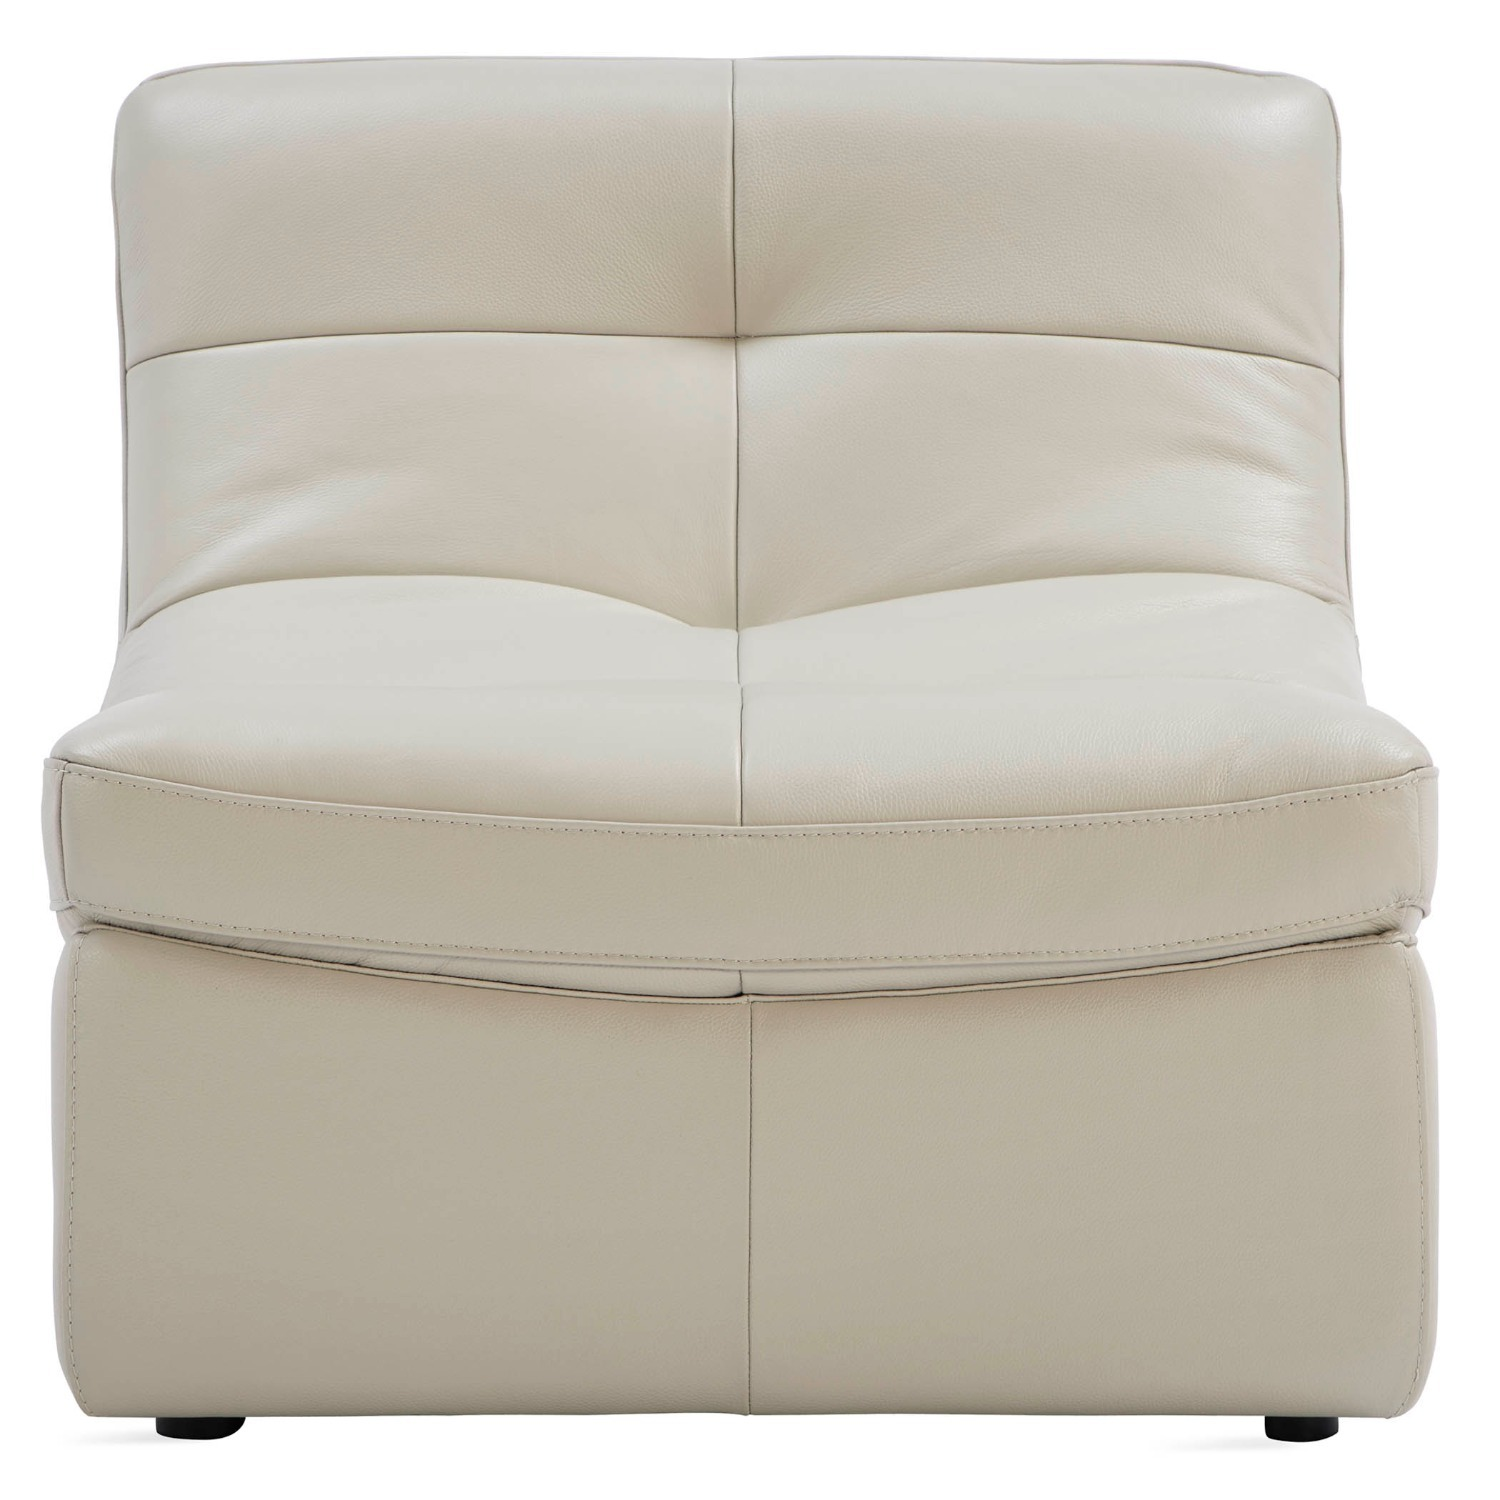 Zgallerie White Leather Sectional Sofa - image-4